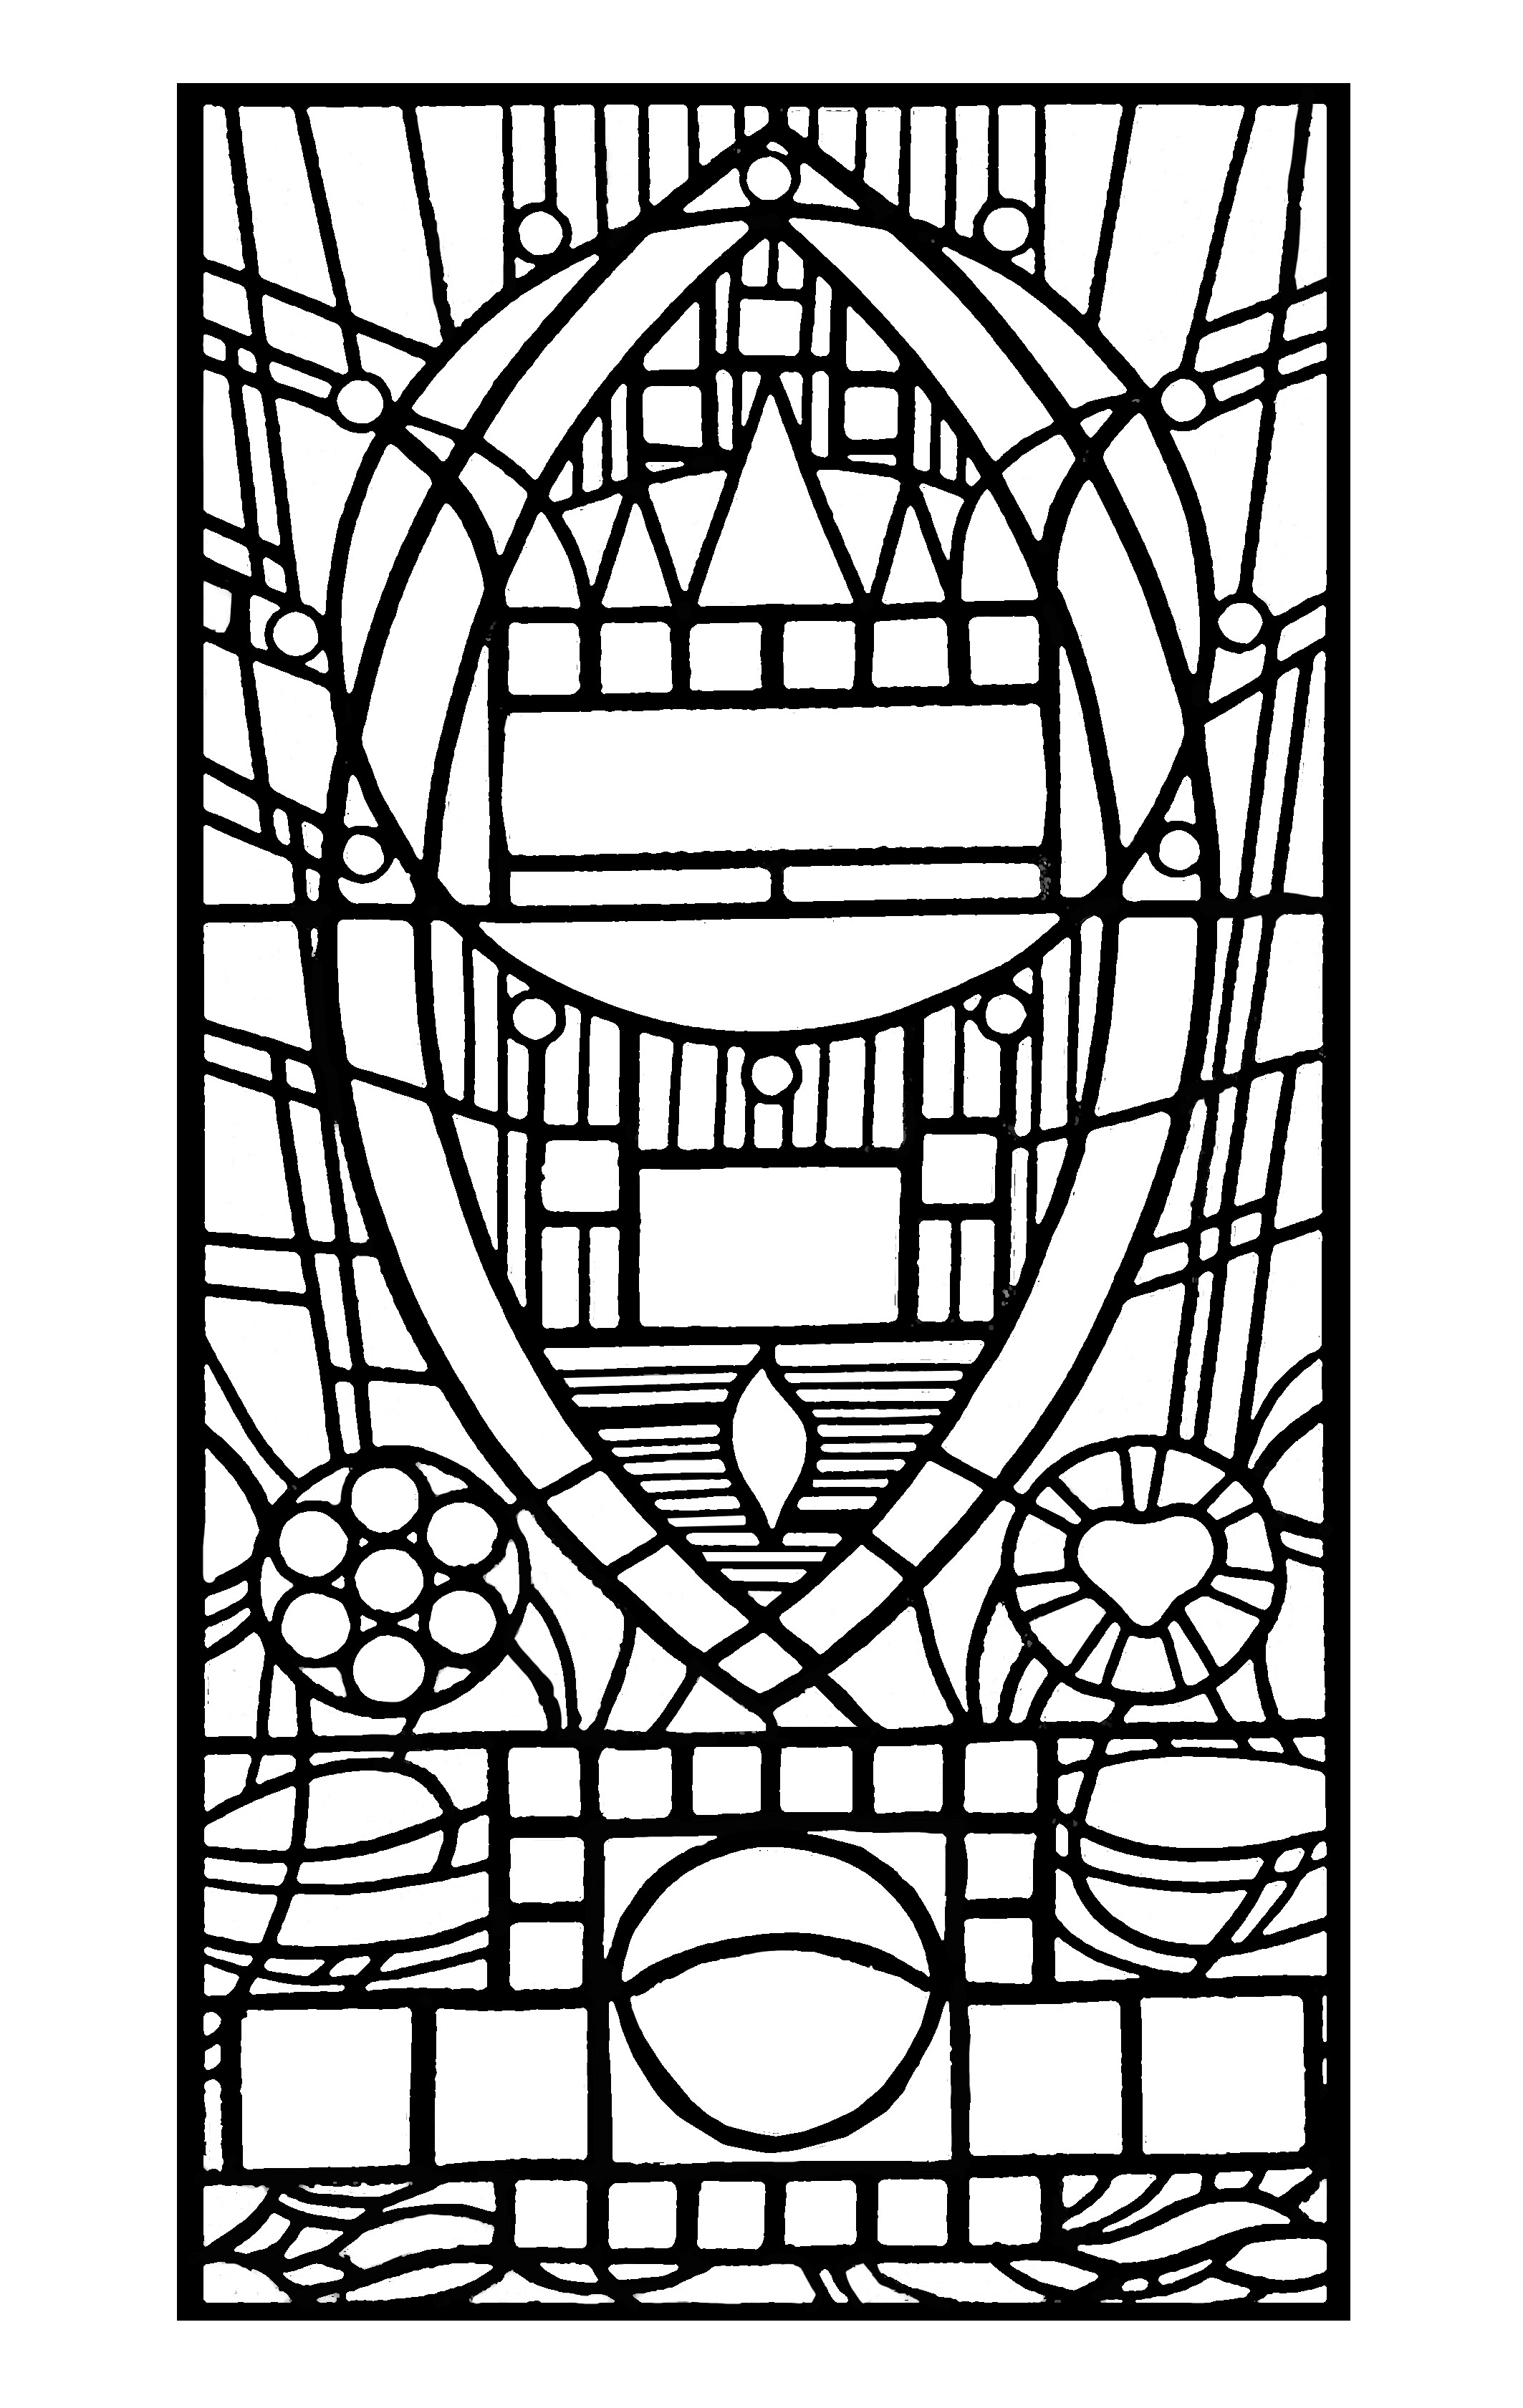 Stained glass de l apparition bleue edegem stained glass - Dessin de vitraux ...